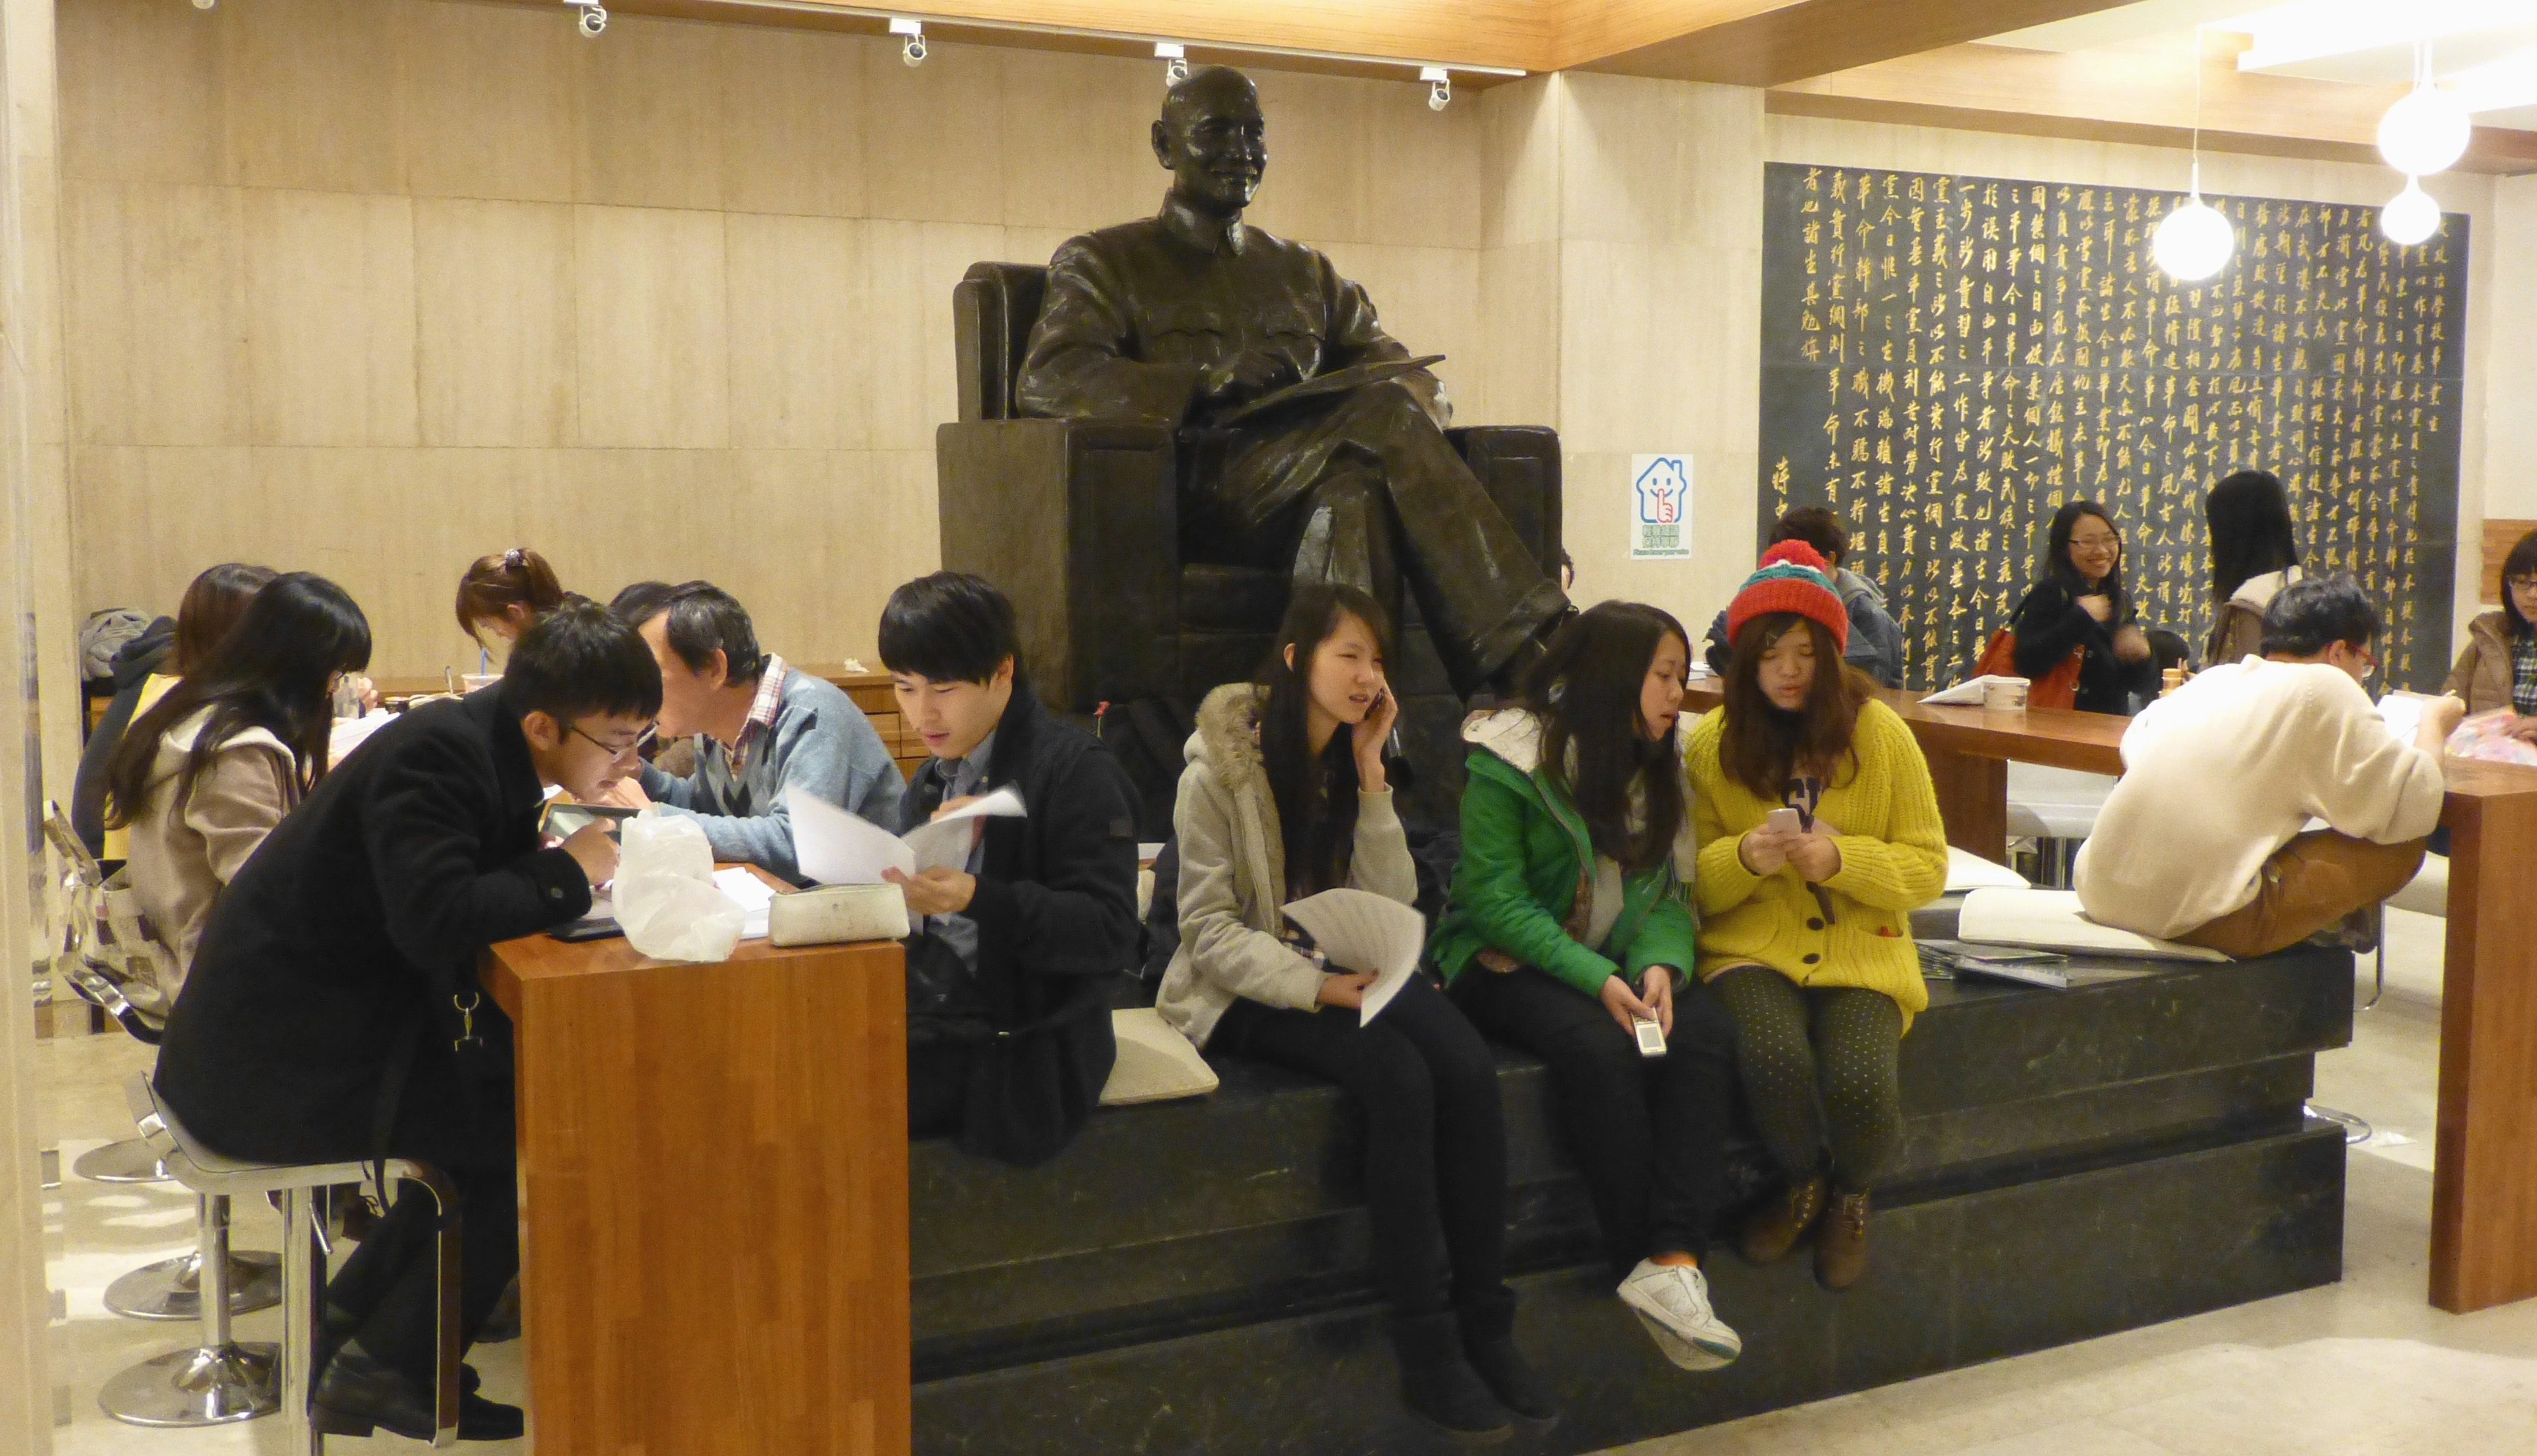 Students read books and prepare lessons beside a statue of late president Chiang Kai-shek in the National Chengchi University library in Taipei, Taiwan, 15 January 2013.